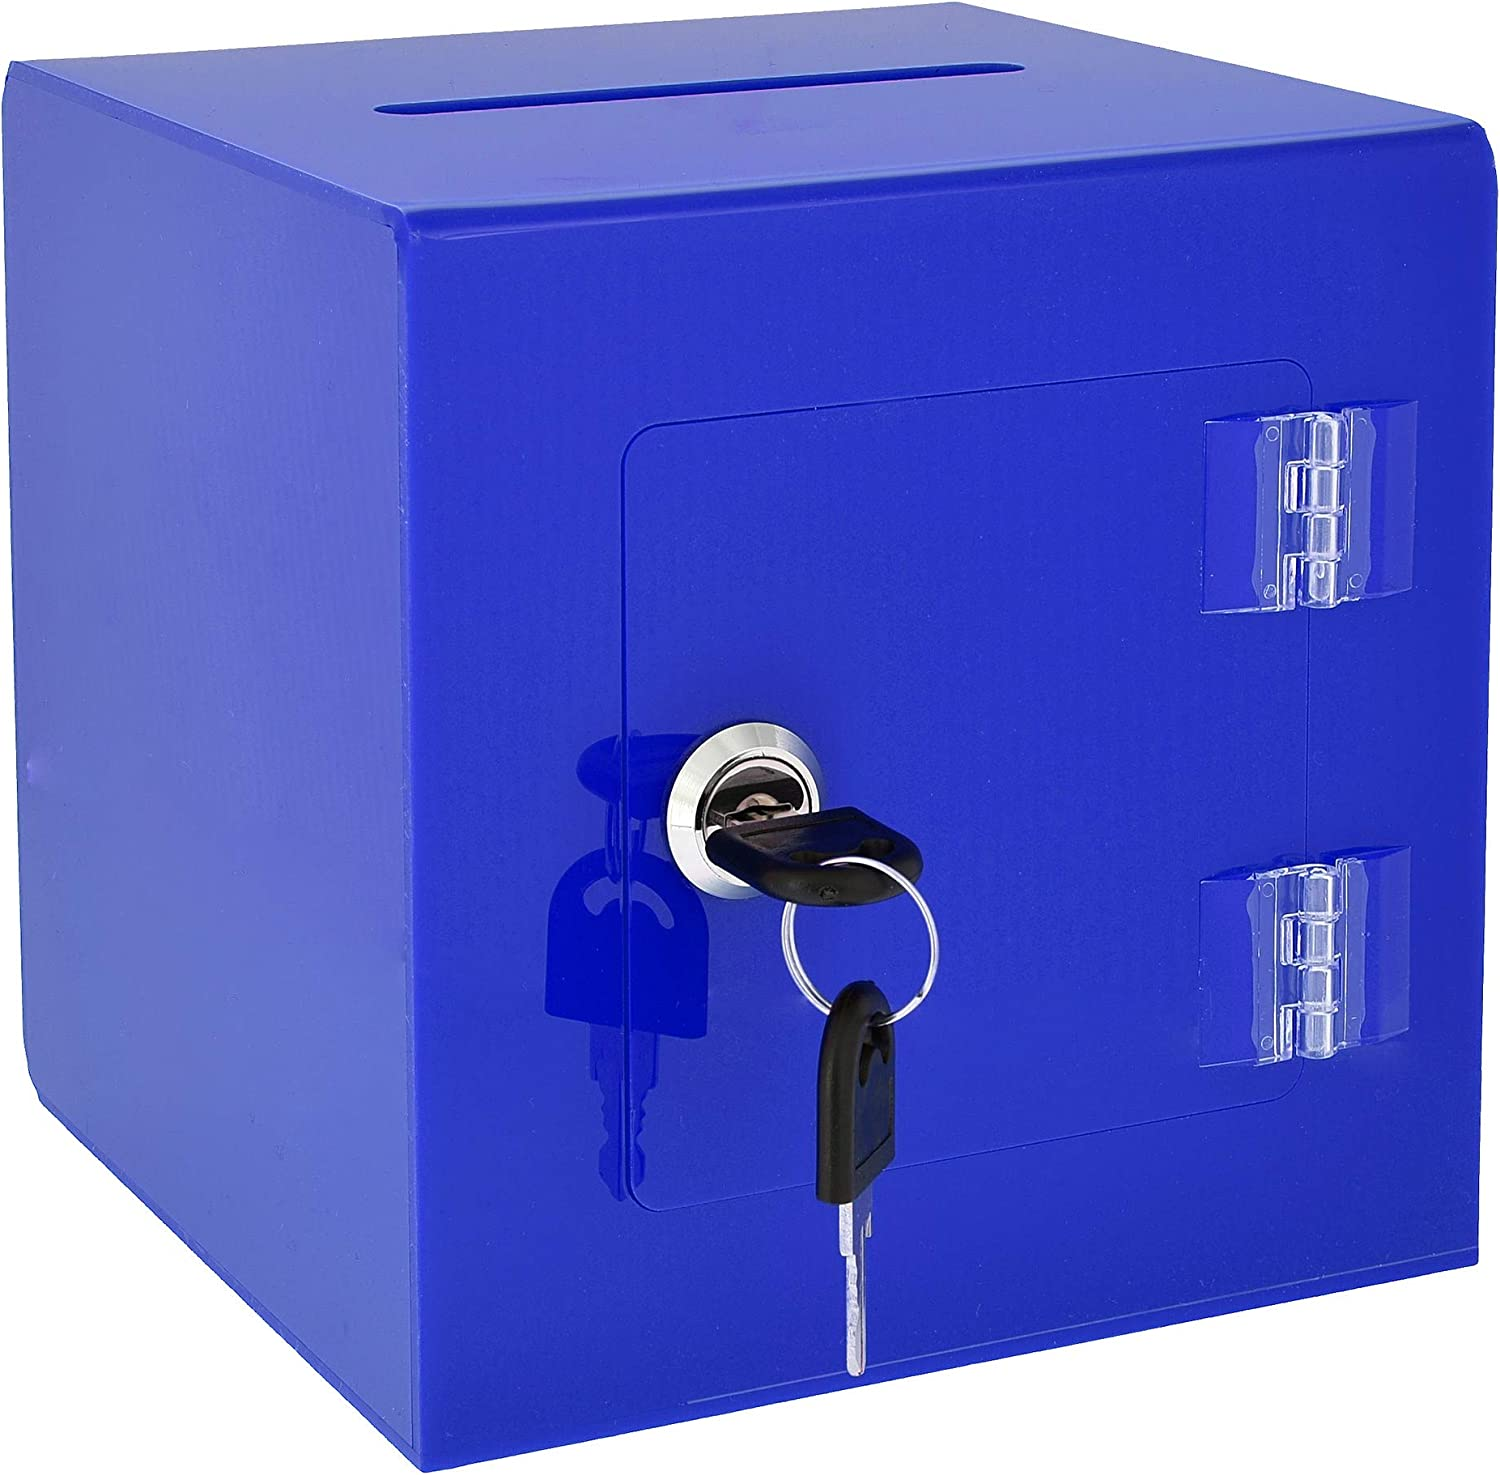 """AdirOffice 6"""" x 6'' Acrylic Ballot Box Donation Box with Easy Open Rear Door - Durable Acrylic Box with Lock - Ideal for Voting, Charity & Suggestion Collection - Blue"""